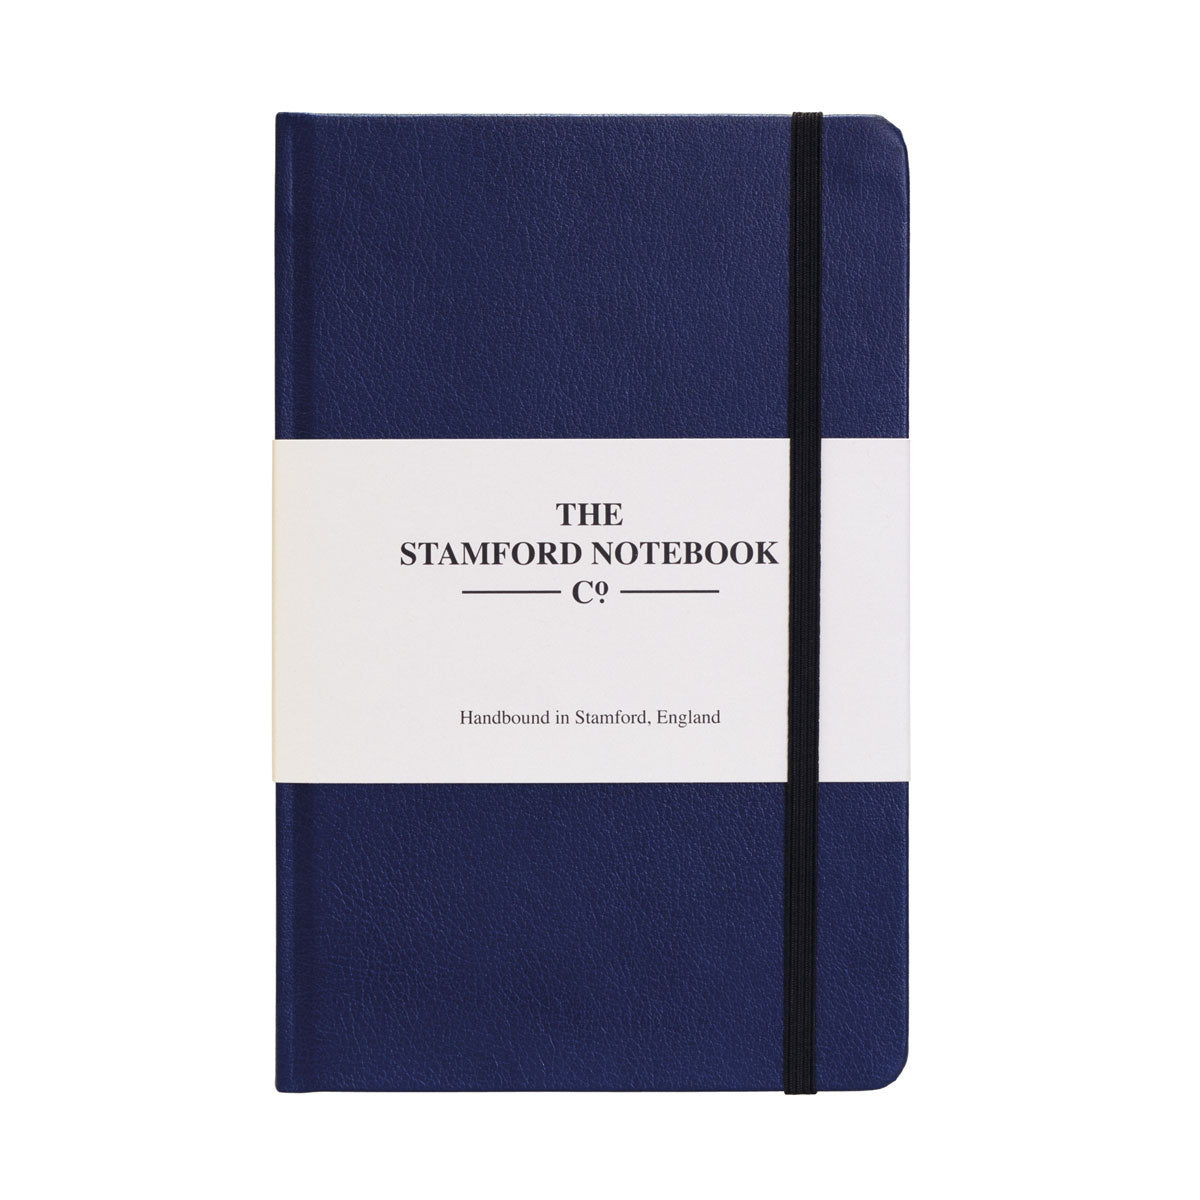 royal blue recycled leather handbound notebook